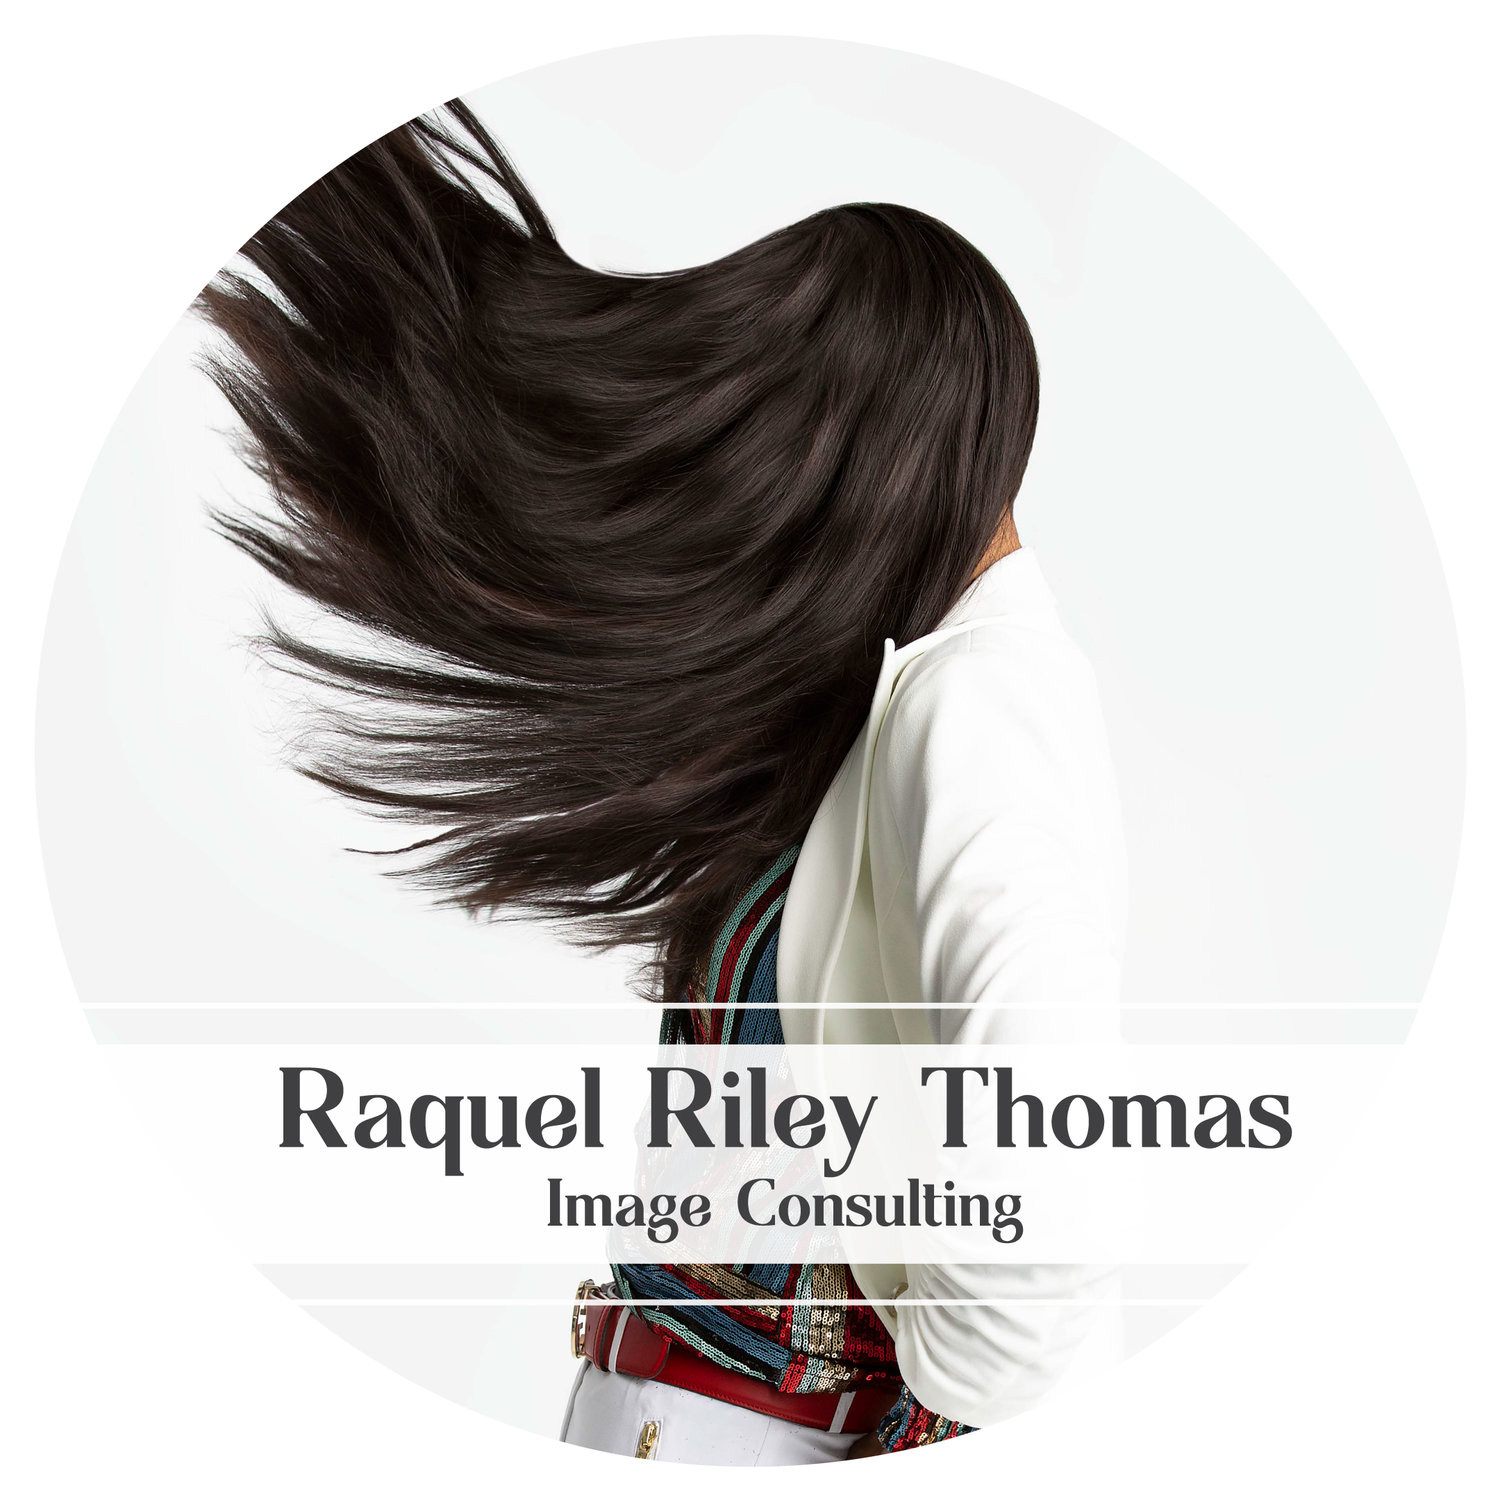 Raquel Riley Thomas